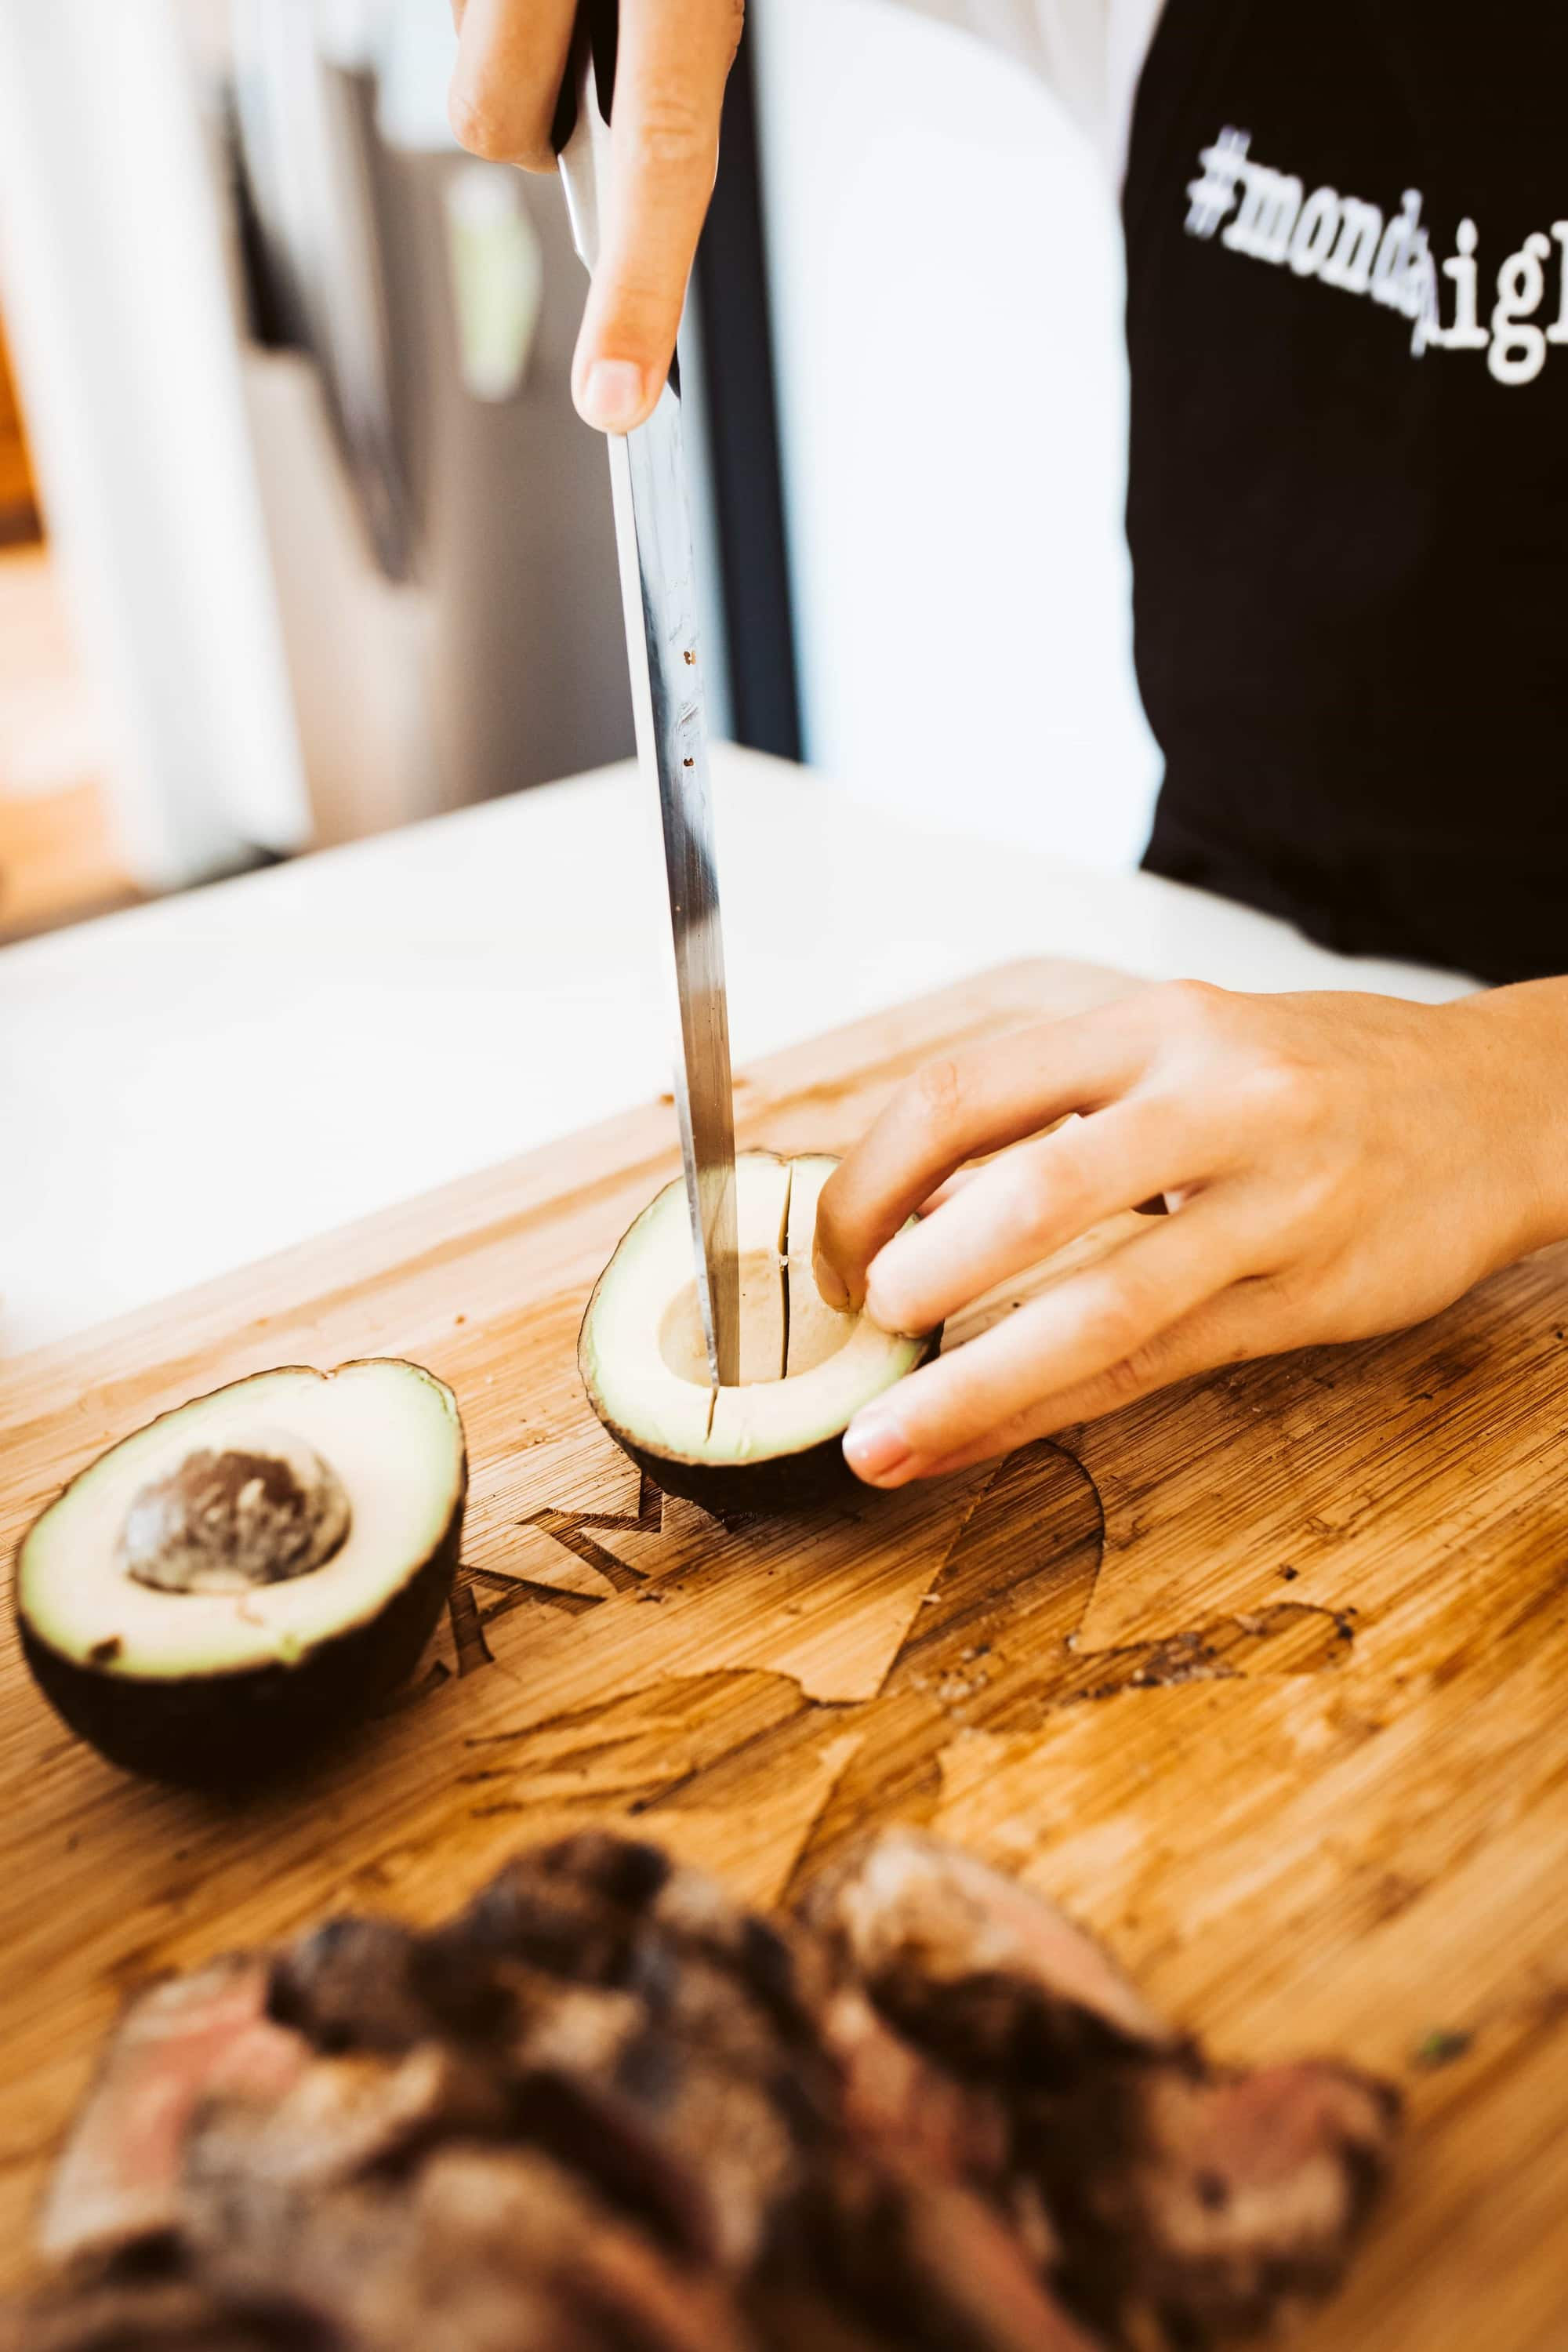 chef slicing avocado